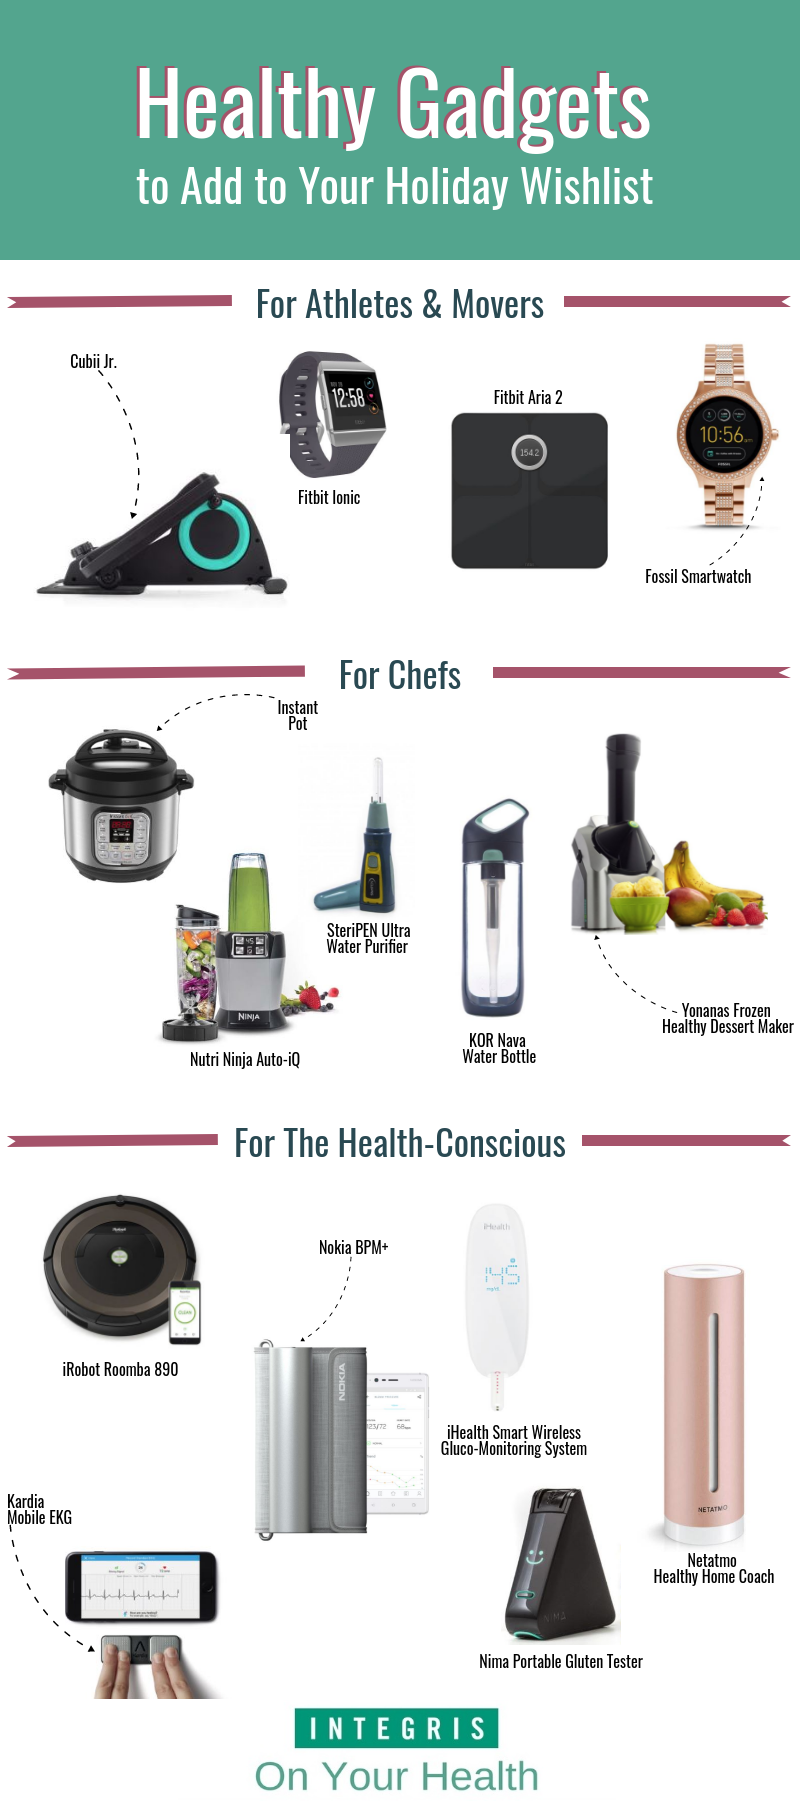 Healthy gadgets for holiday wishlists infographic